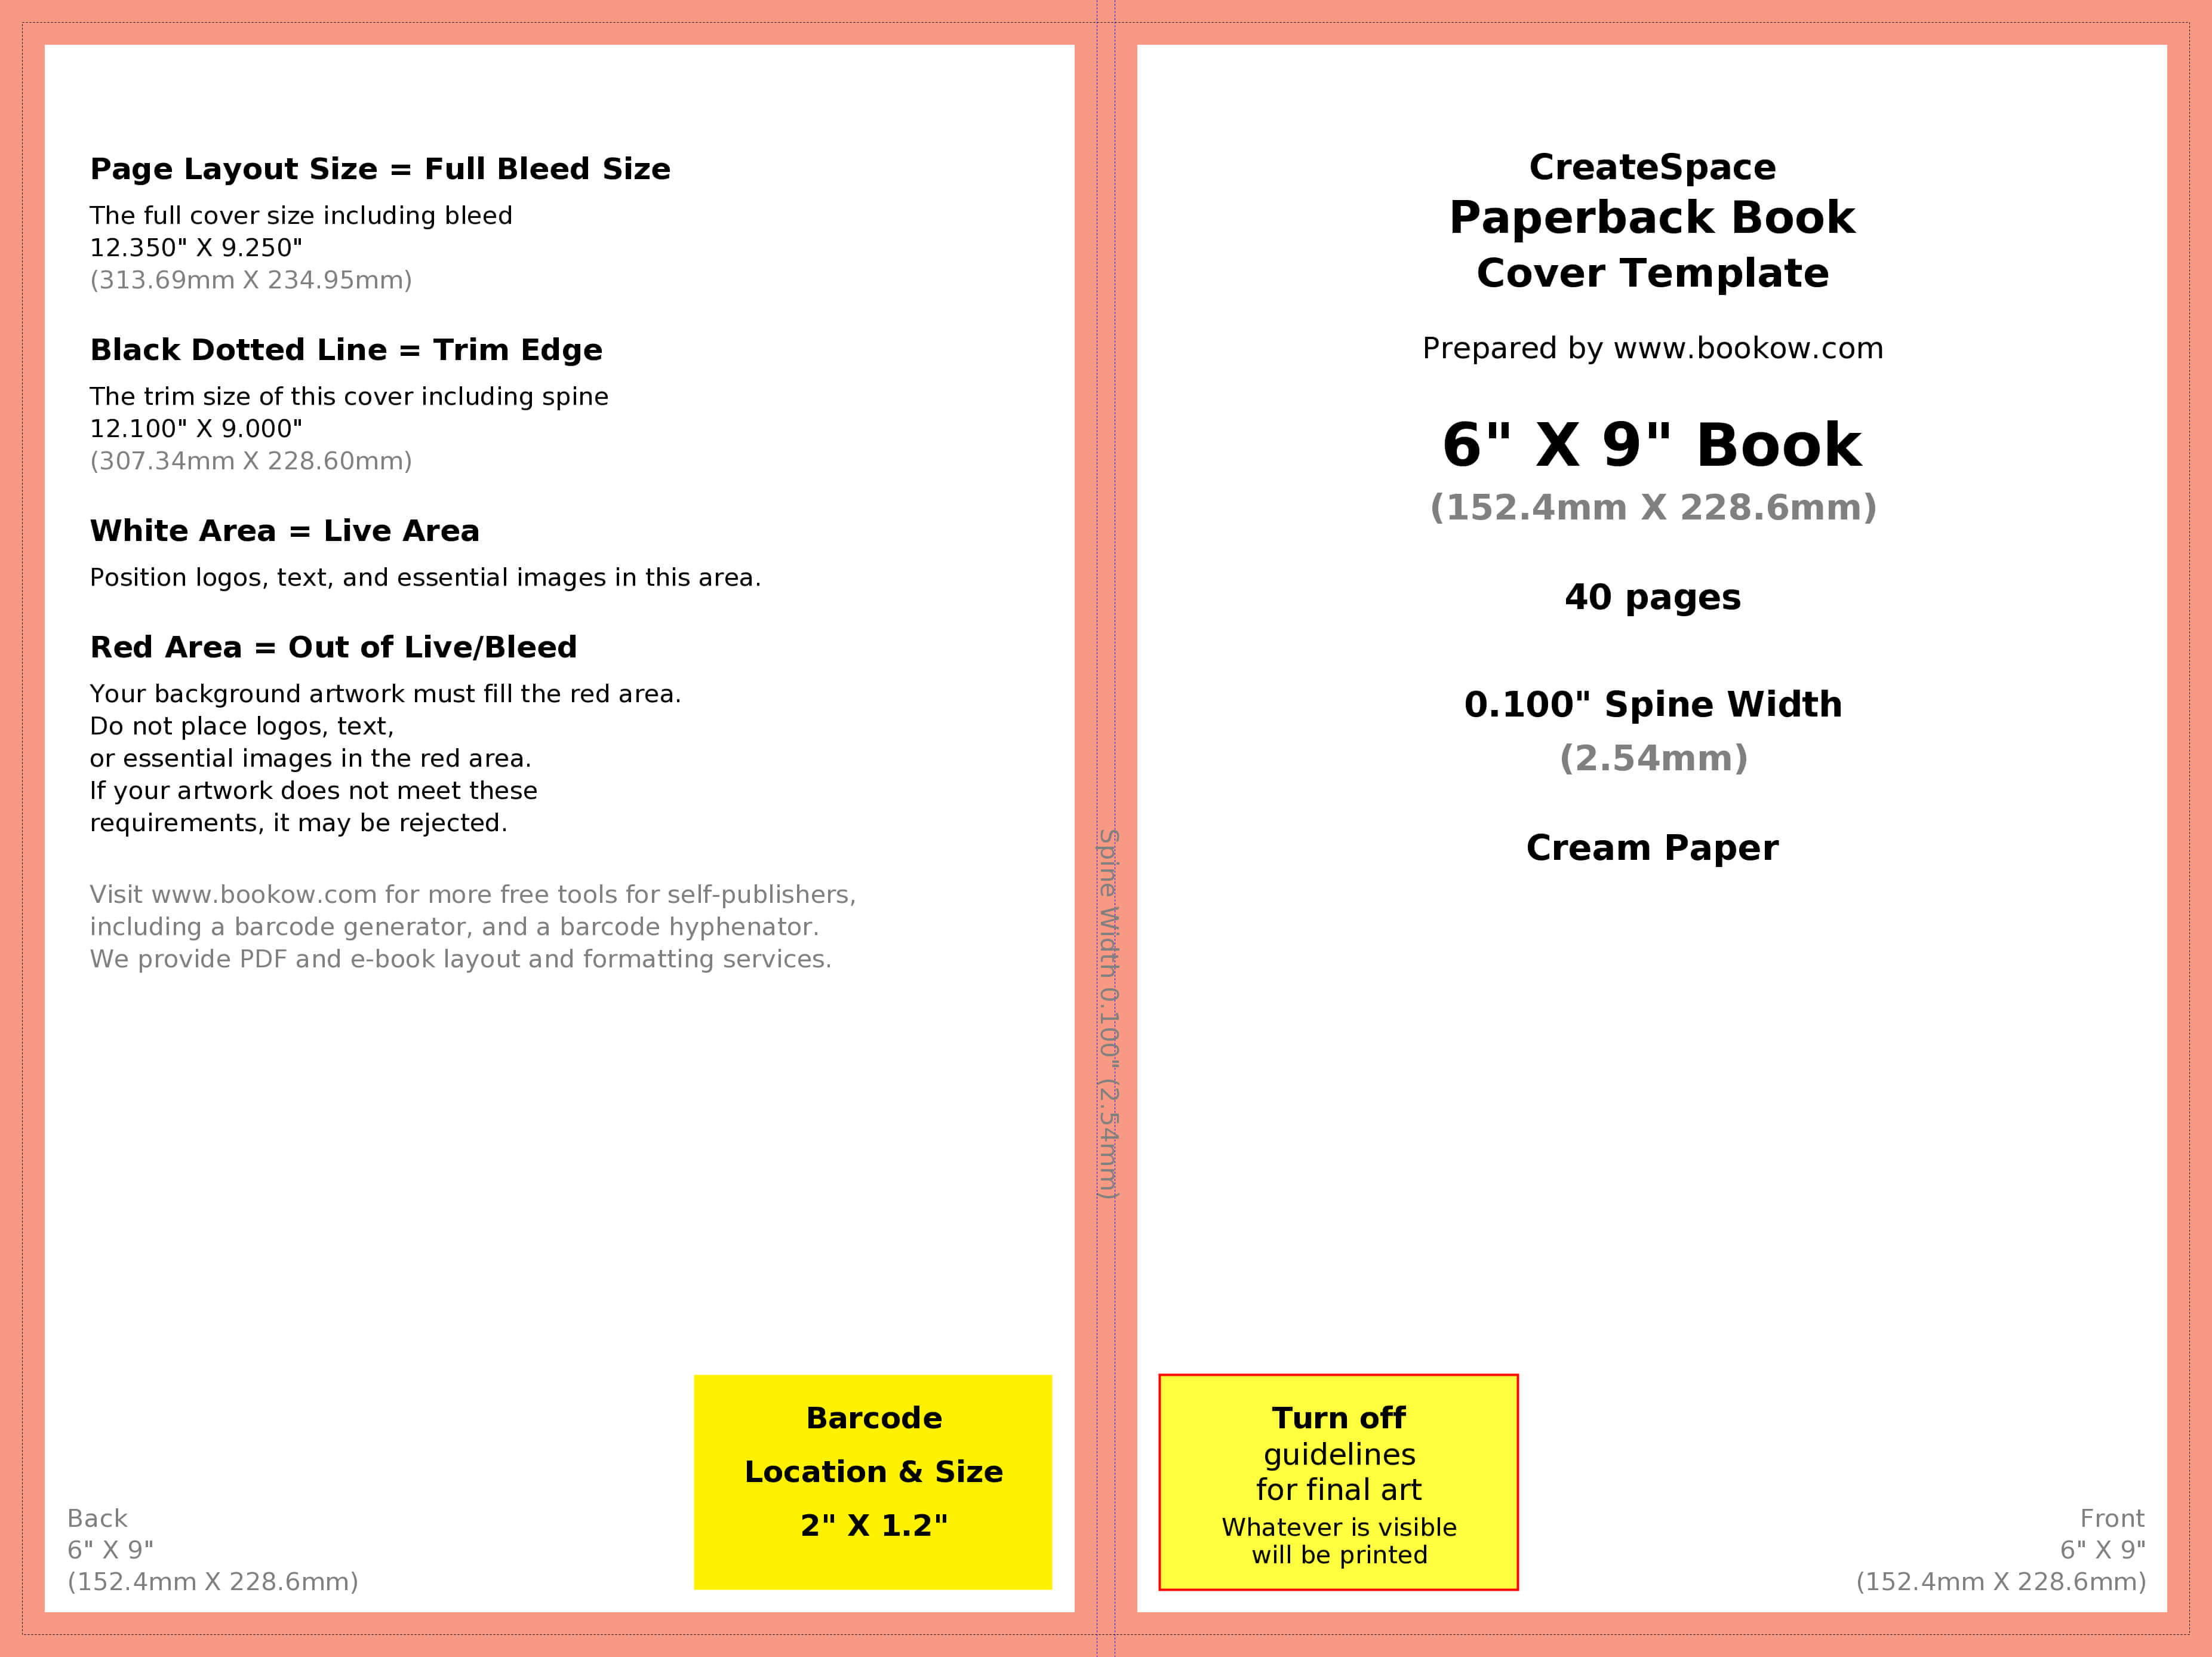 015 Template Ideas Free Book Cover Microsoft Word Cs 6X9 40 for 6X9 Book Template For Word